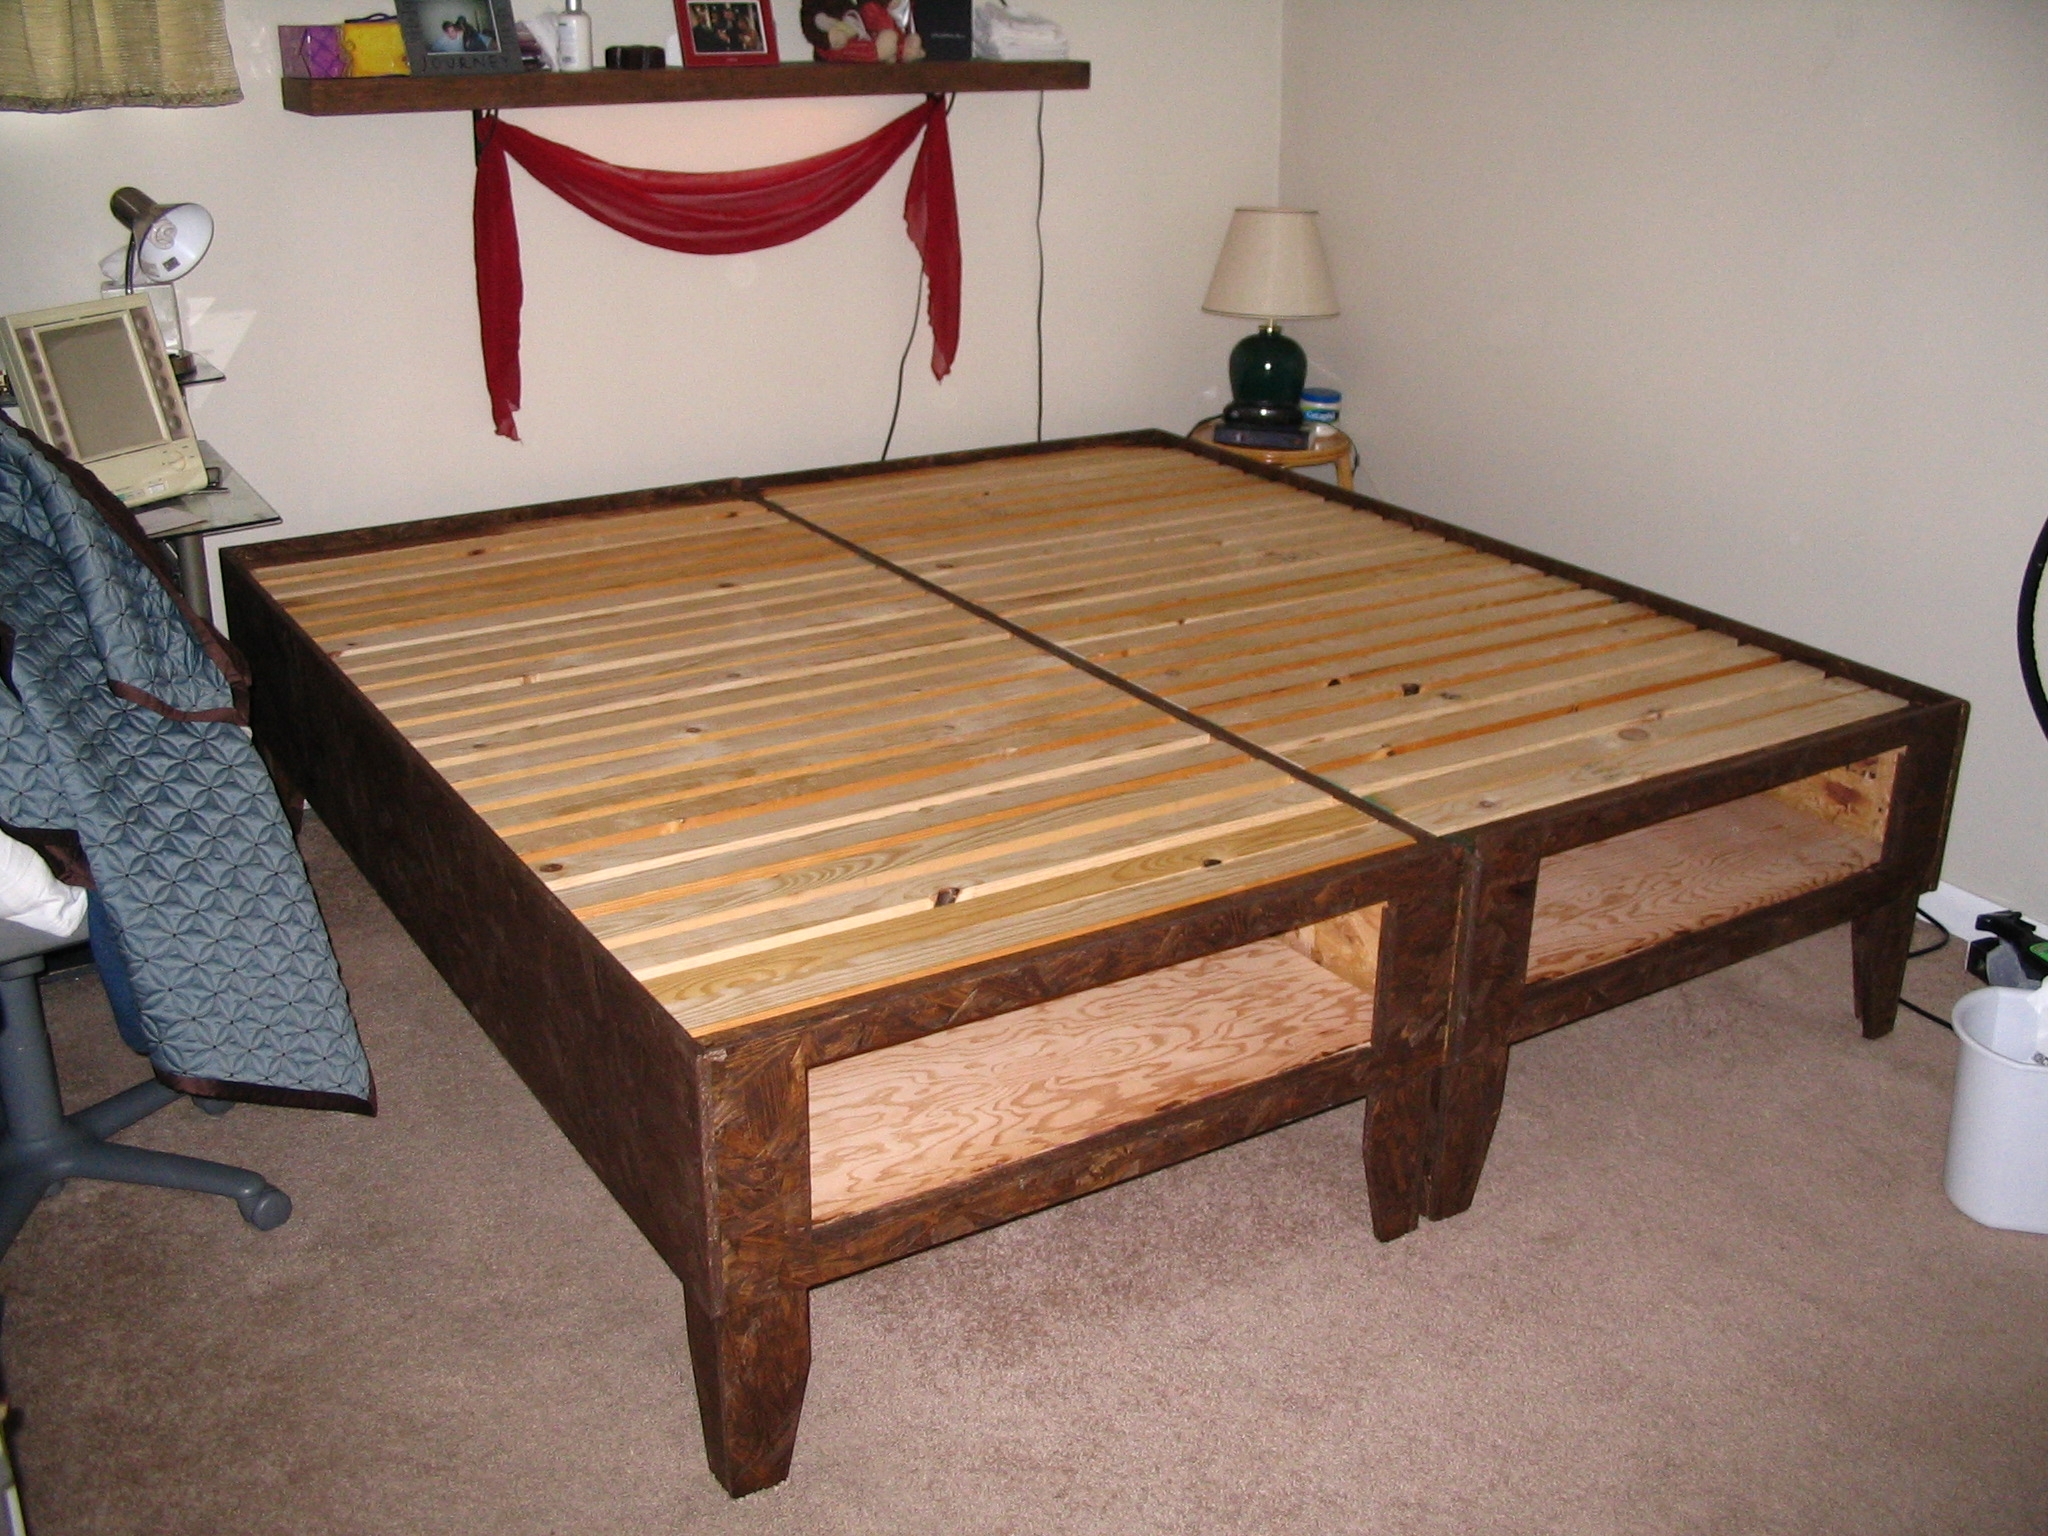 Wooden Bed Frames Under $100